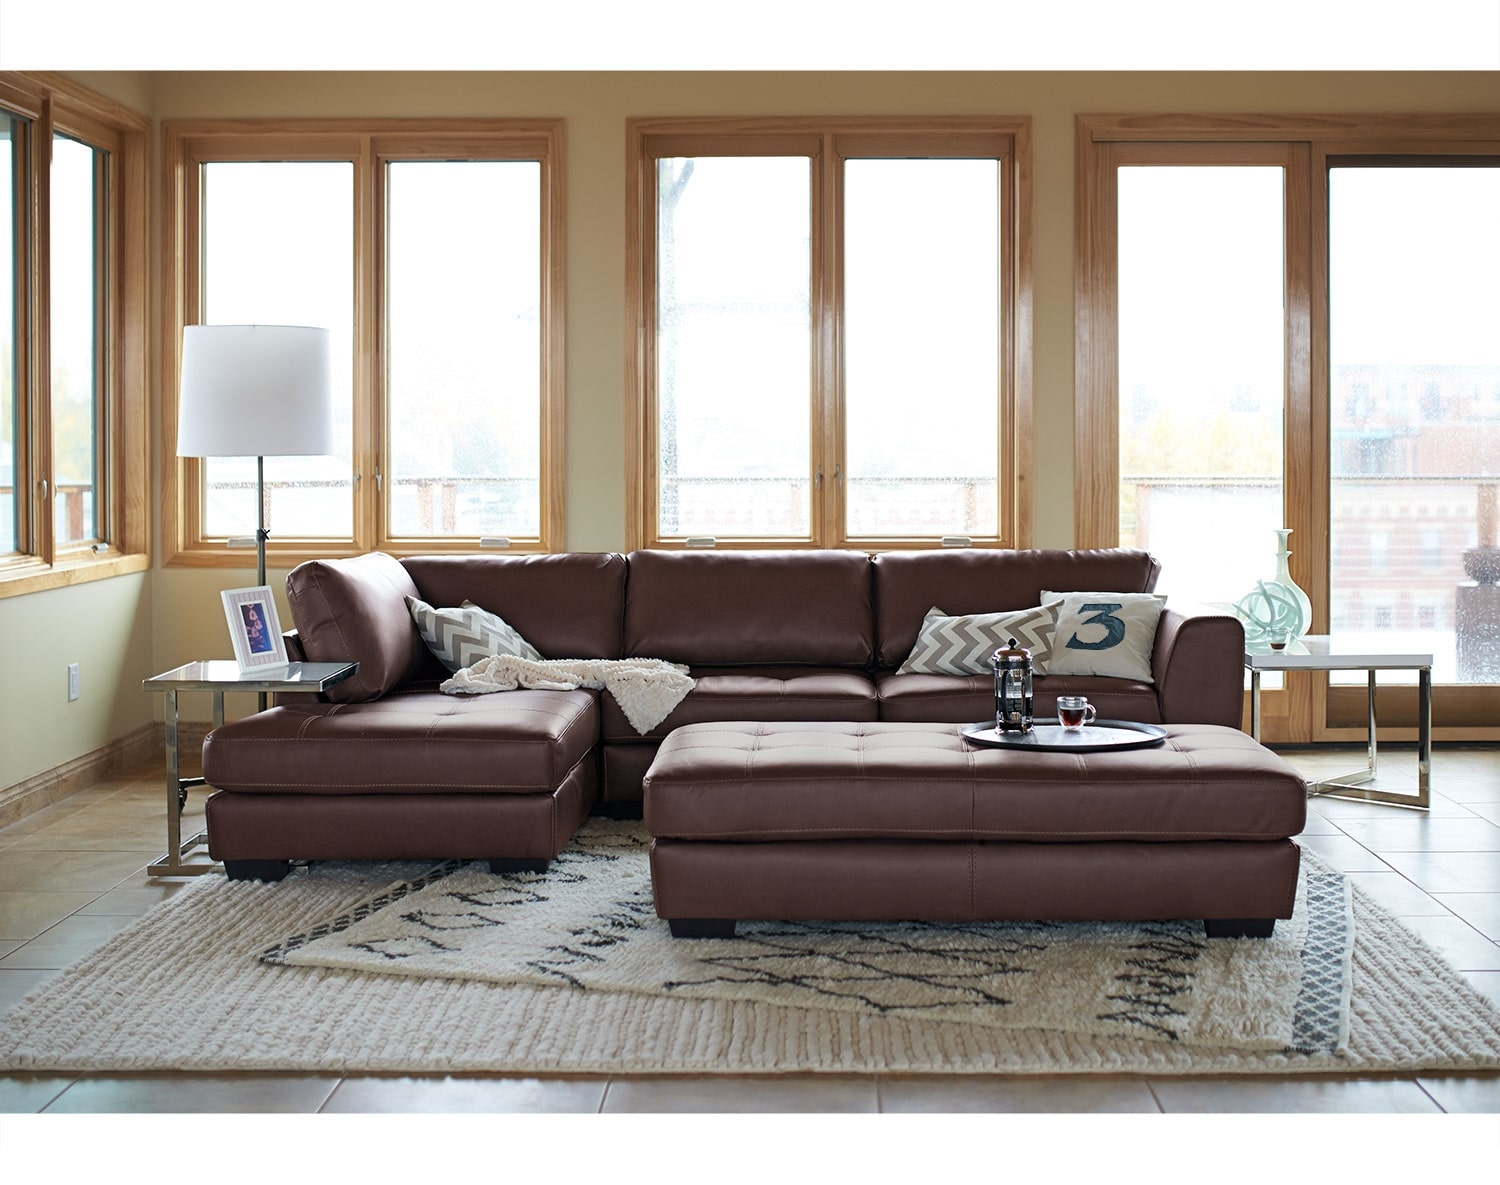 Living Room Furniture - The Lyon Brown Collection - 2 Pc. Sectional